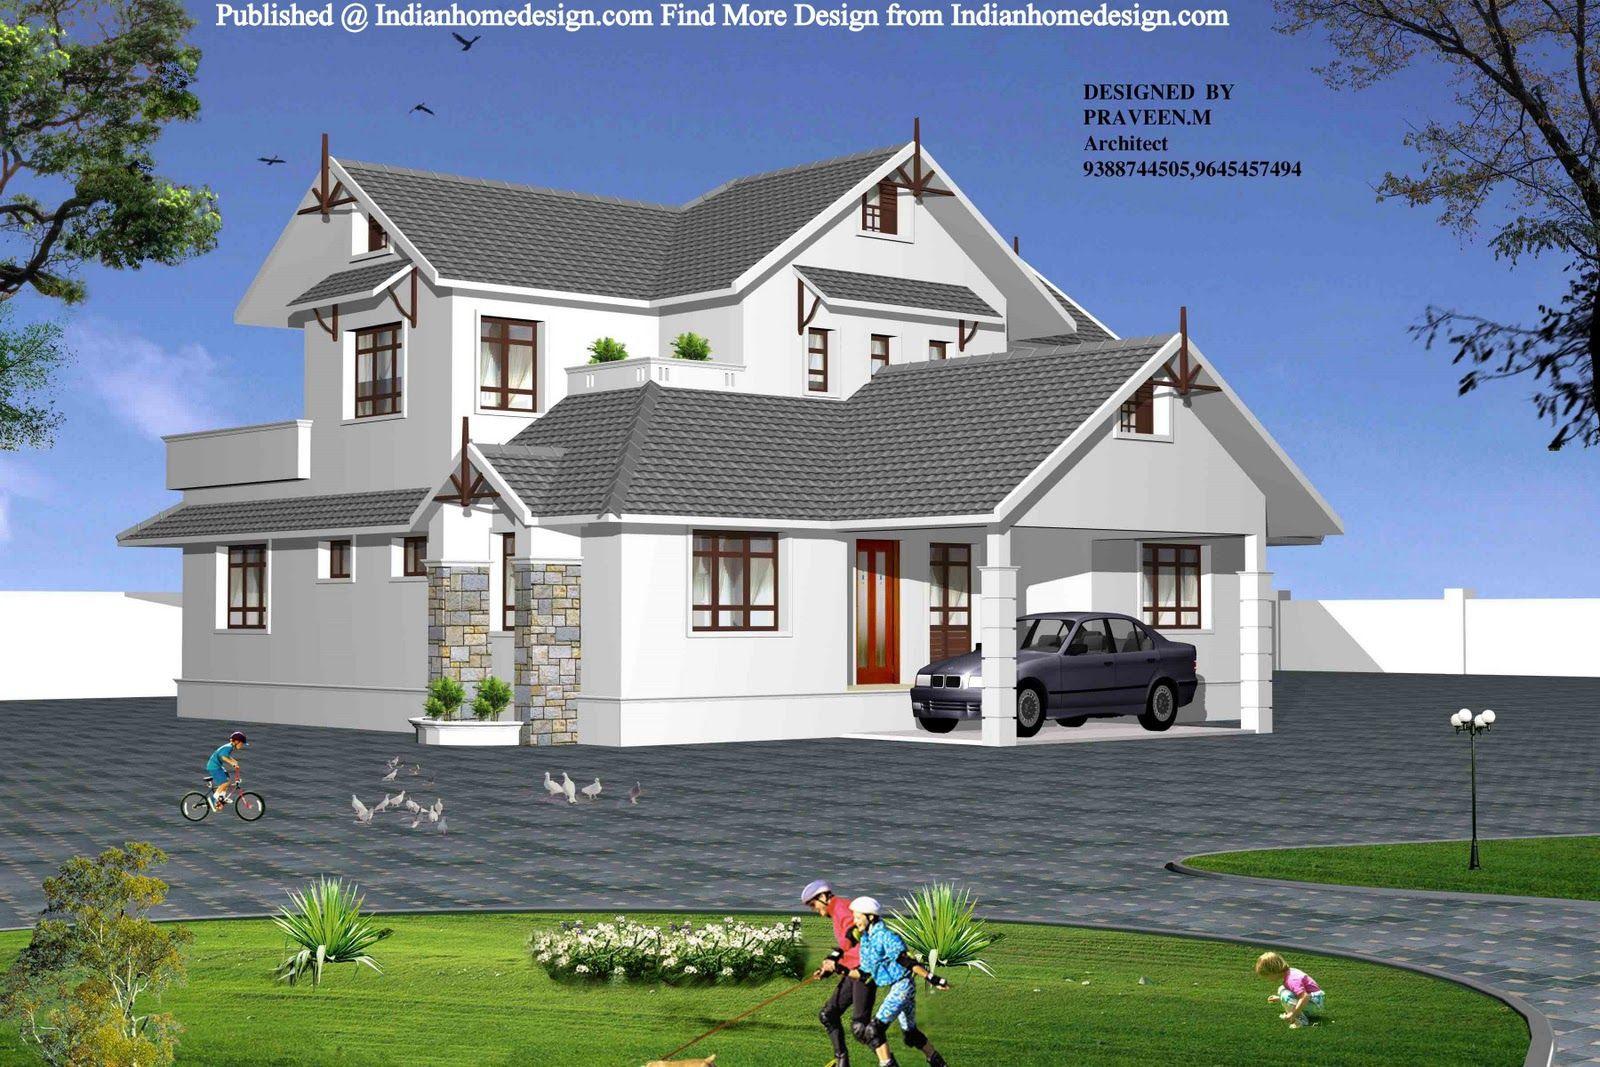 Beautiful Homes 15 On Home Design Your Home Ideas And Design Inspiration Beautiful Homes House Design Beautiful House Plans